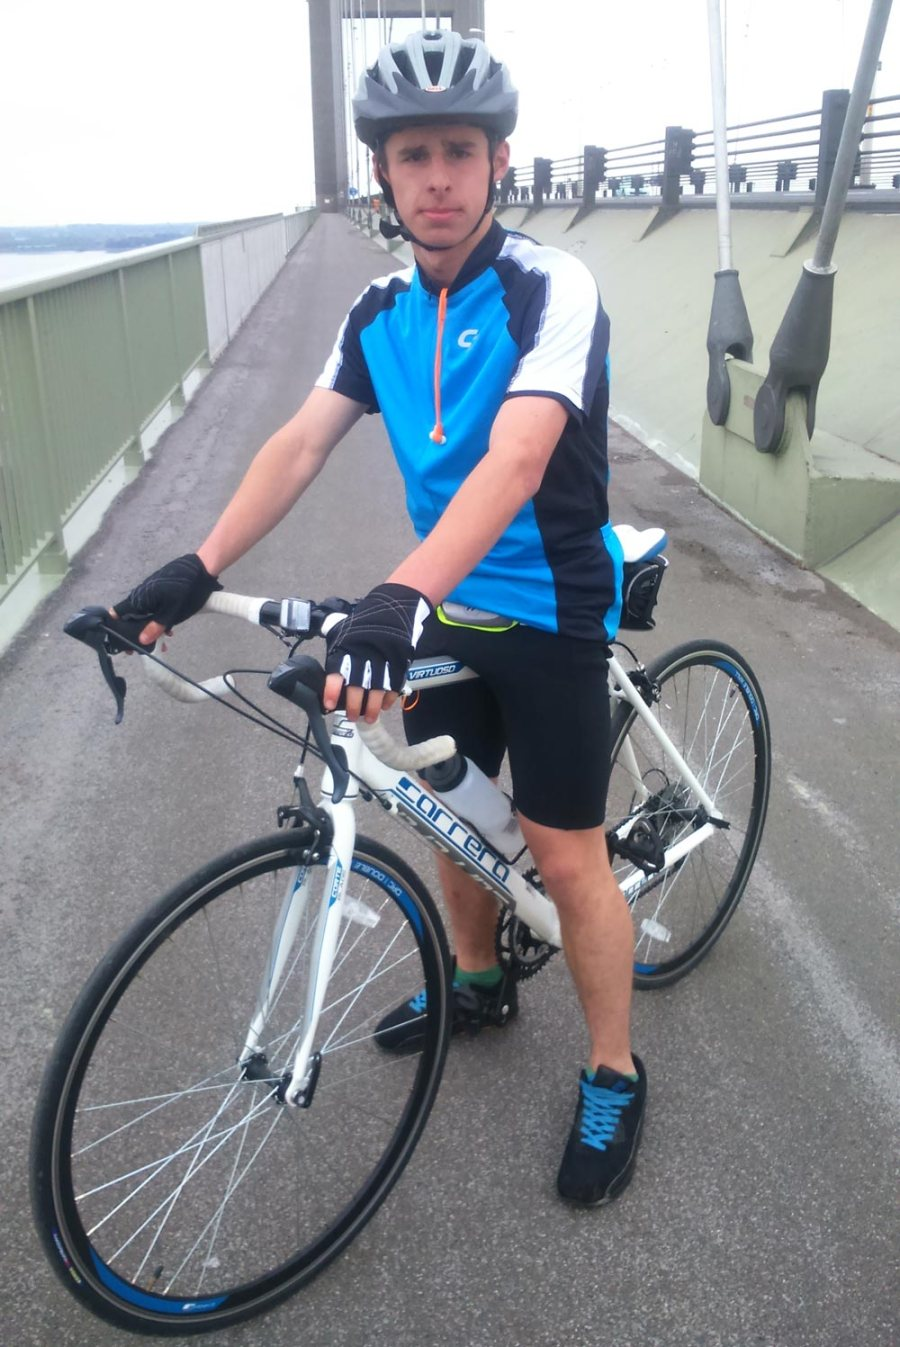 Baily Speed at the Humber Bridge on his bike ride for Cancer Research